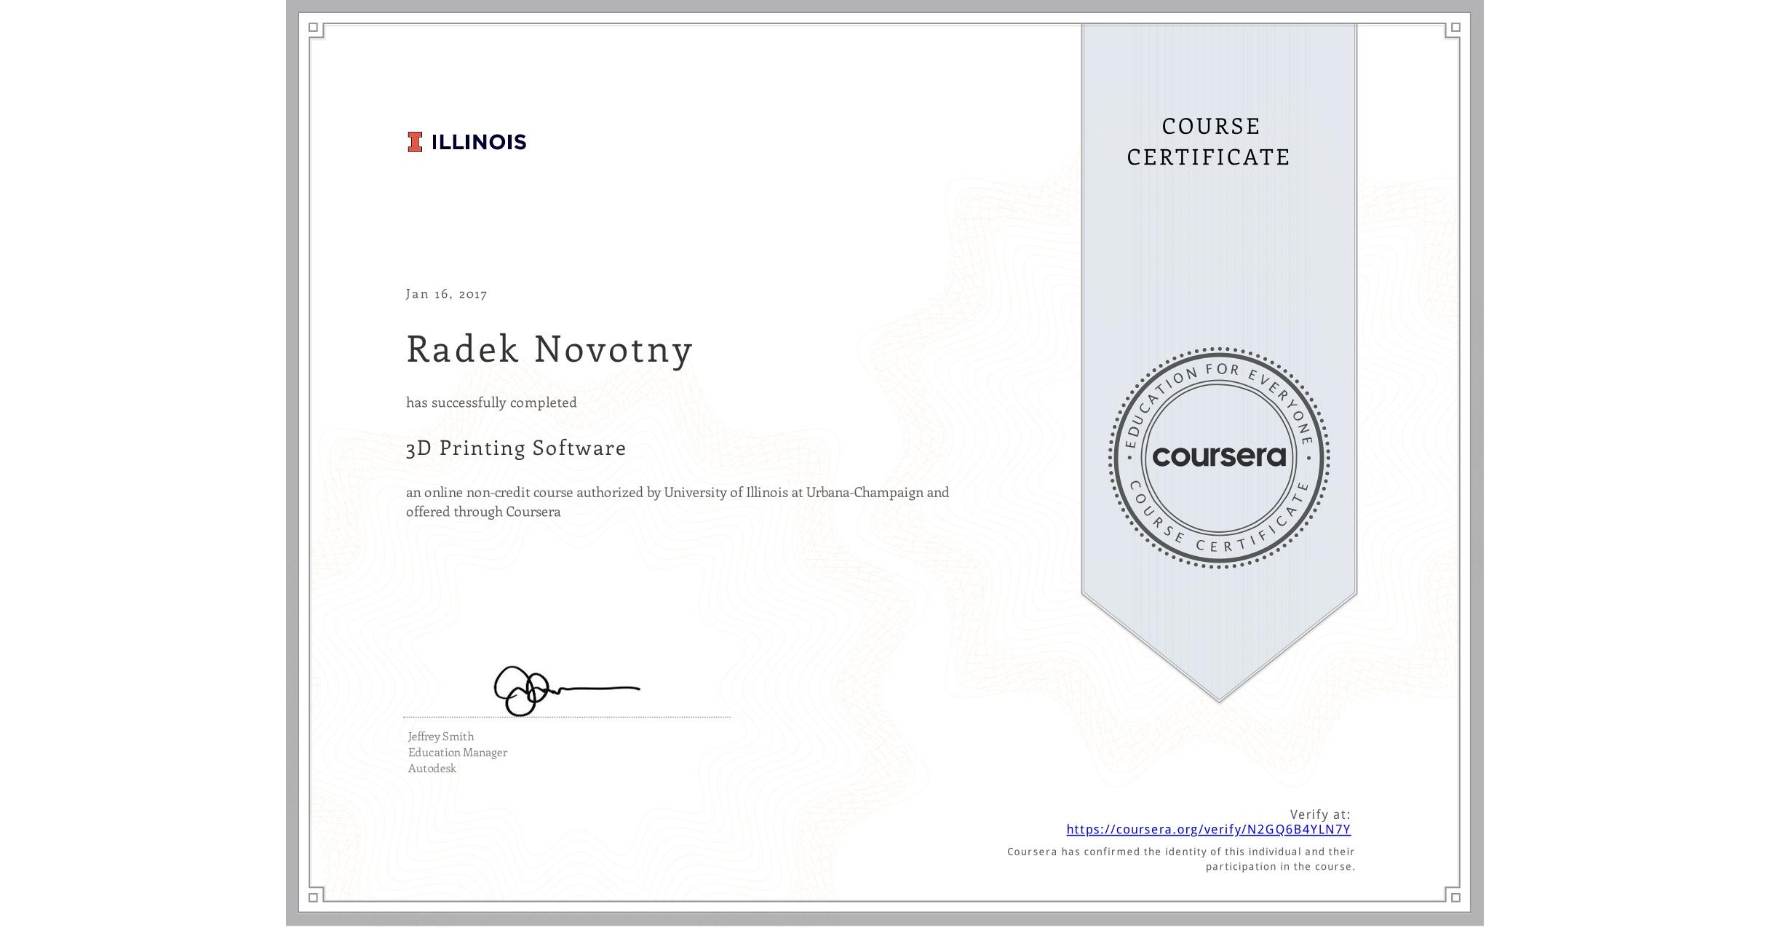 View certificate for Radek Novotny, 3D Printing Software, an online non-credit course authorized by University of Illinois at Urbana-Champaign and offered through Coursera